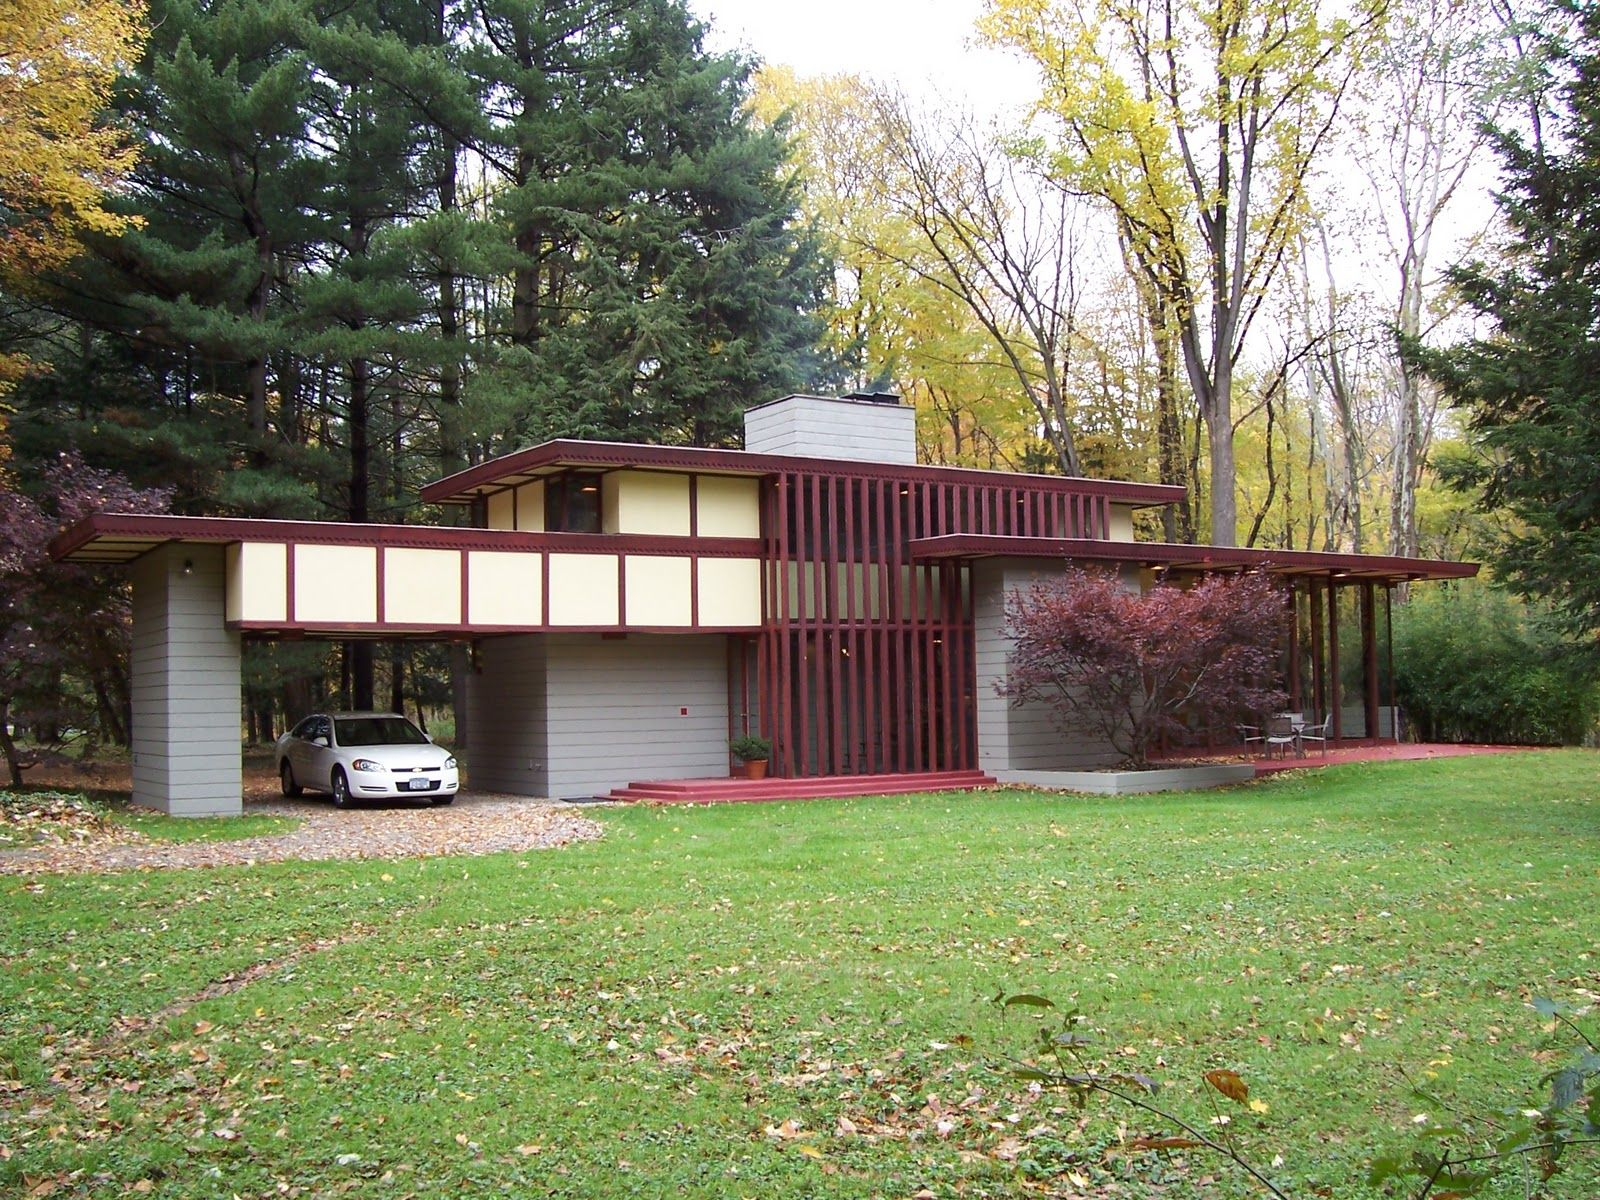 Louis penfield house 1955 willoughby hills cleveland for Usonian house plans for sale